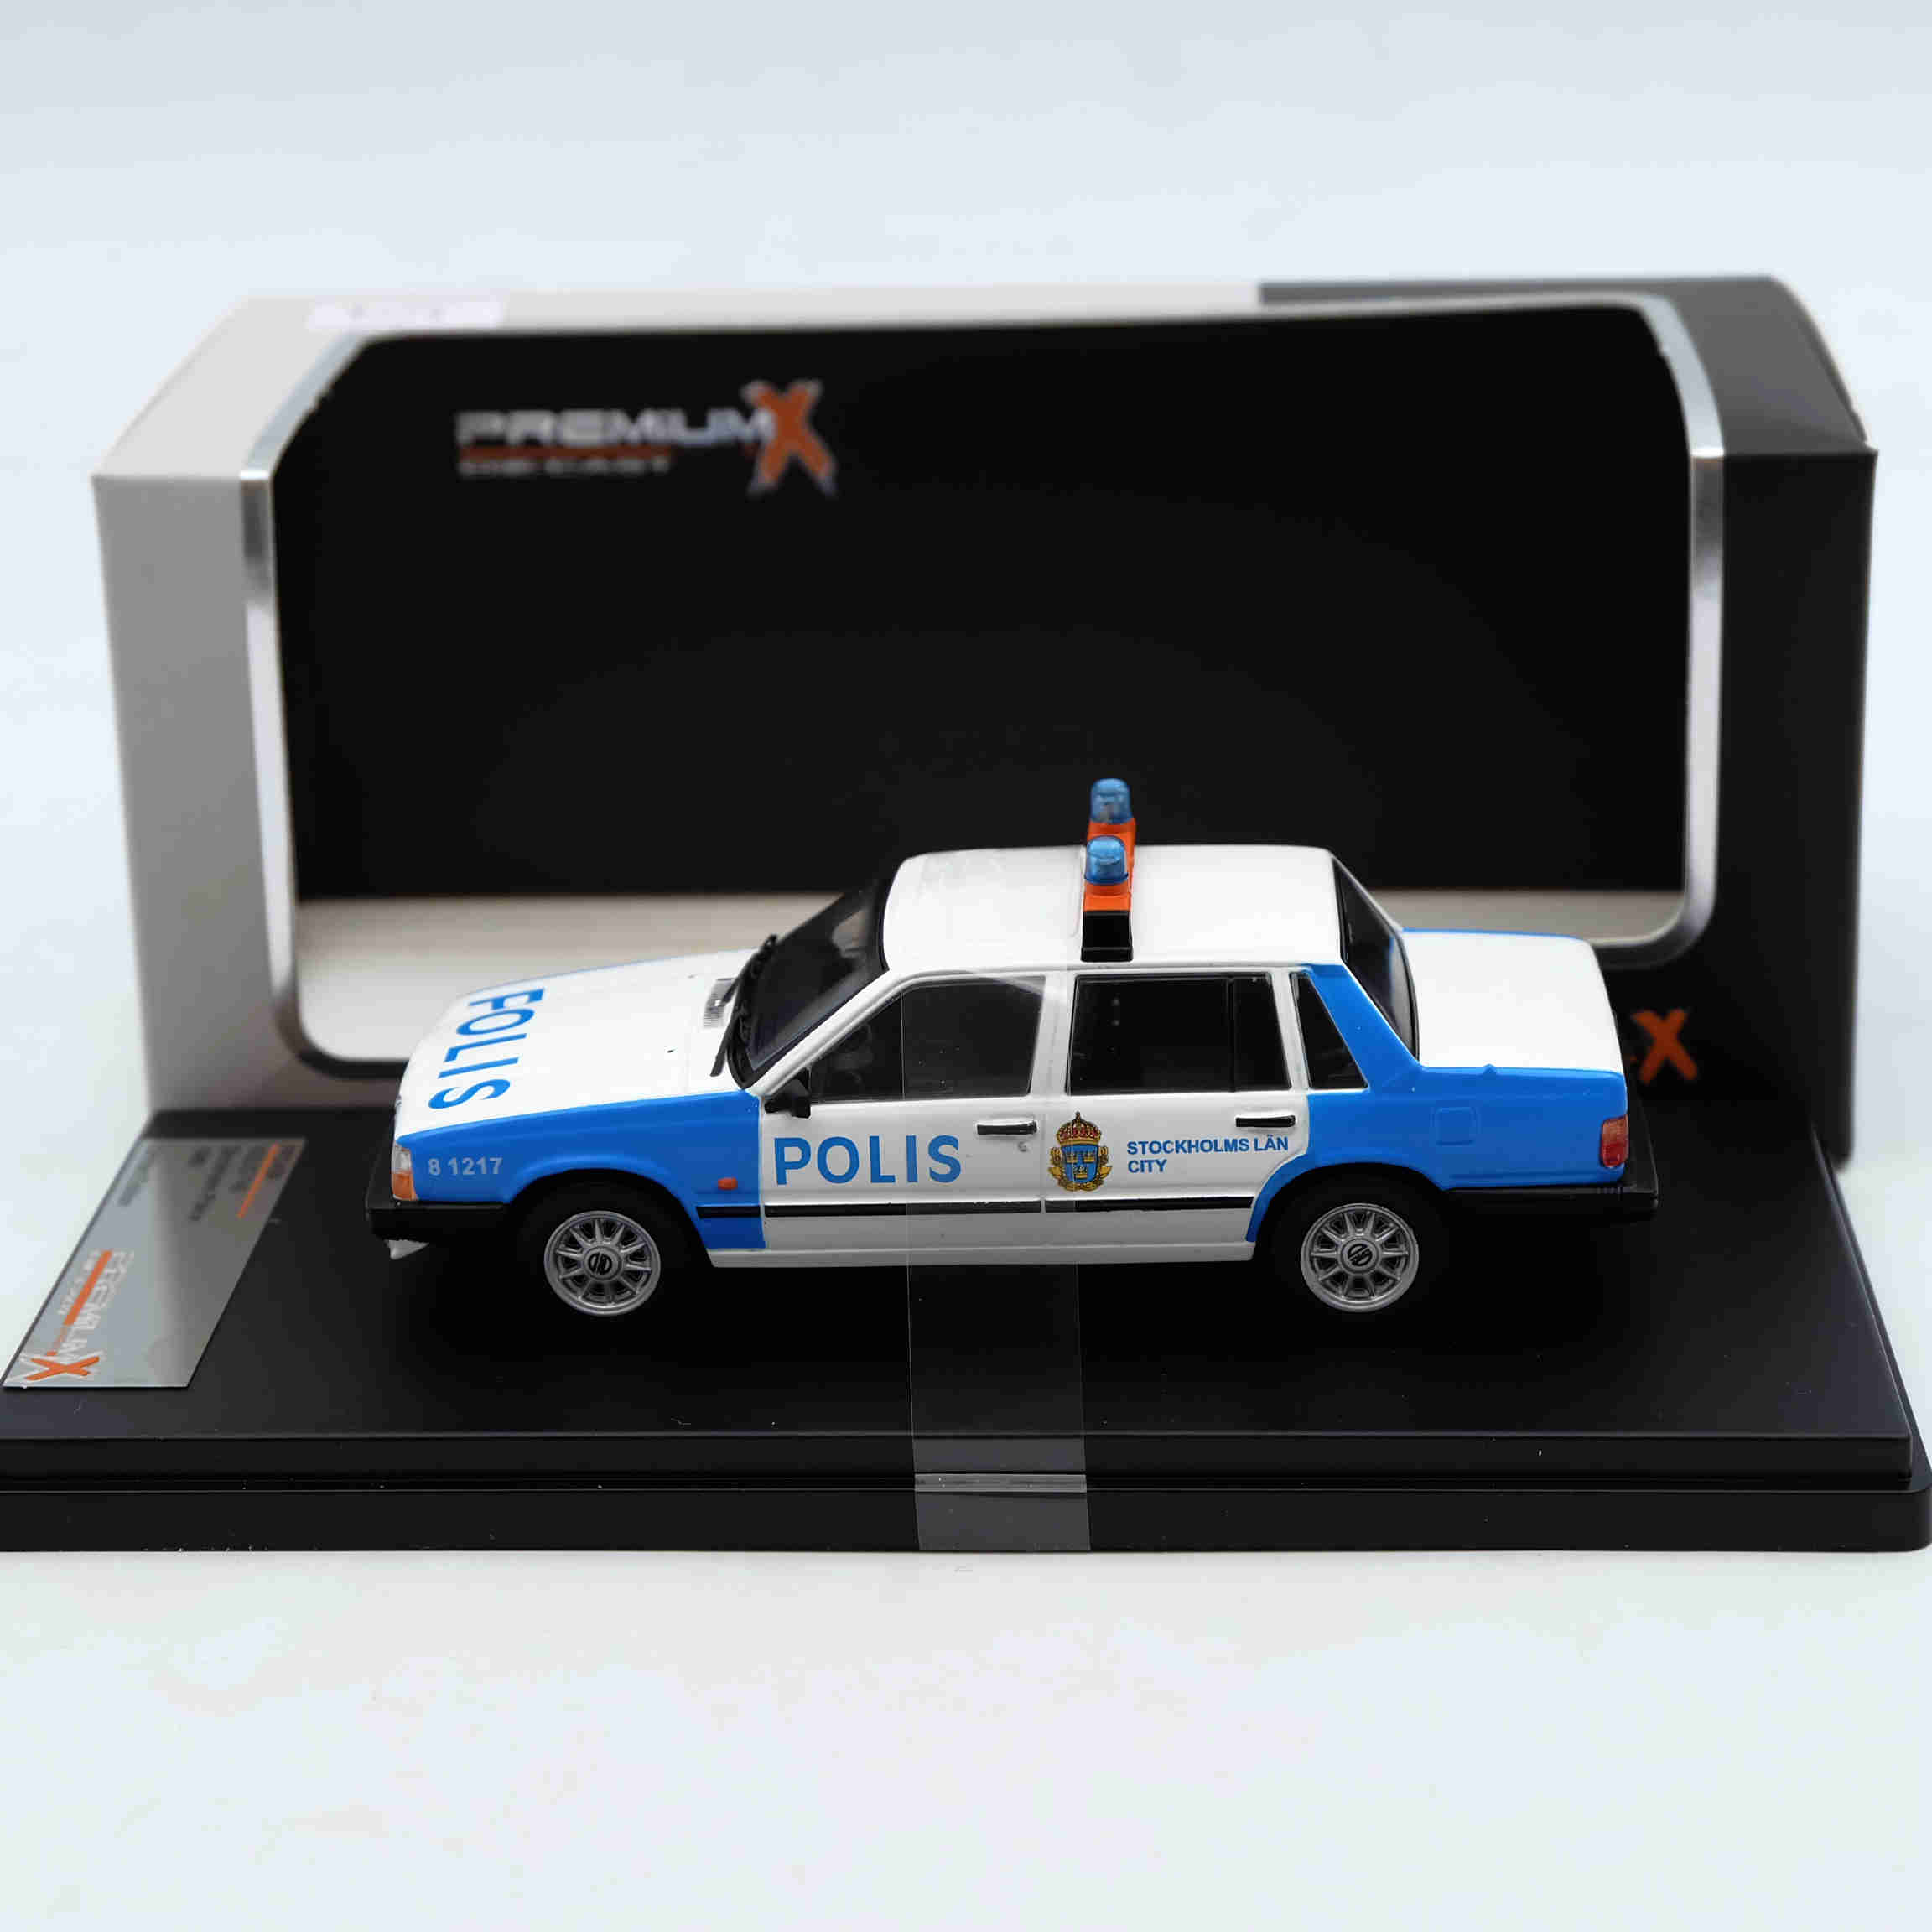 Premium X 1:43 Volvo 740 Stockholm Police PRD439 Resin Models Car Limited Edition Auto Collection ixo premium x 1 43 stutz blackhawk coupe 1971 red prd002 limited edition collection resin auto models